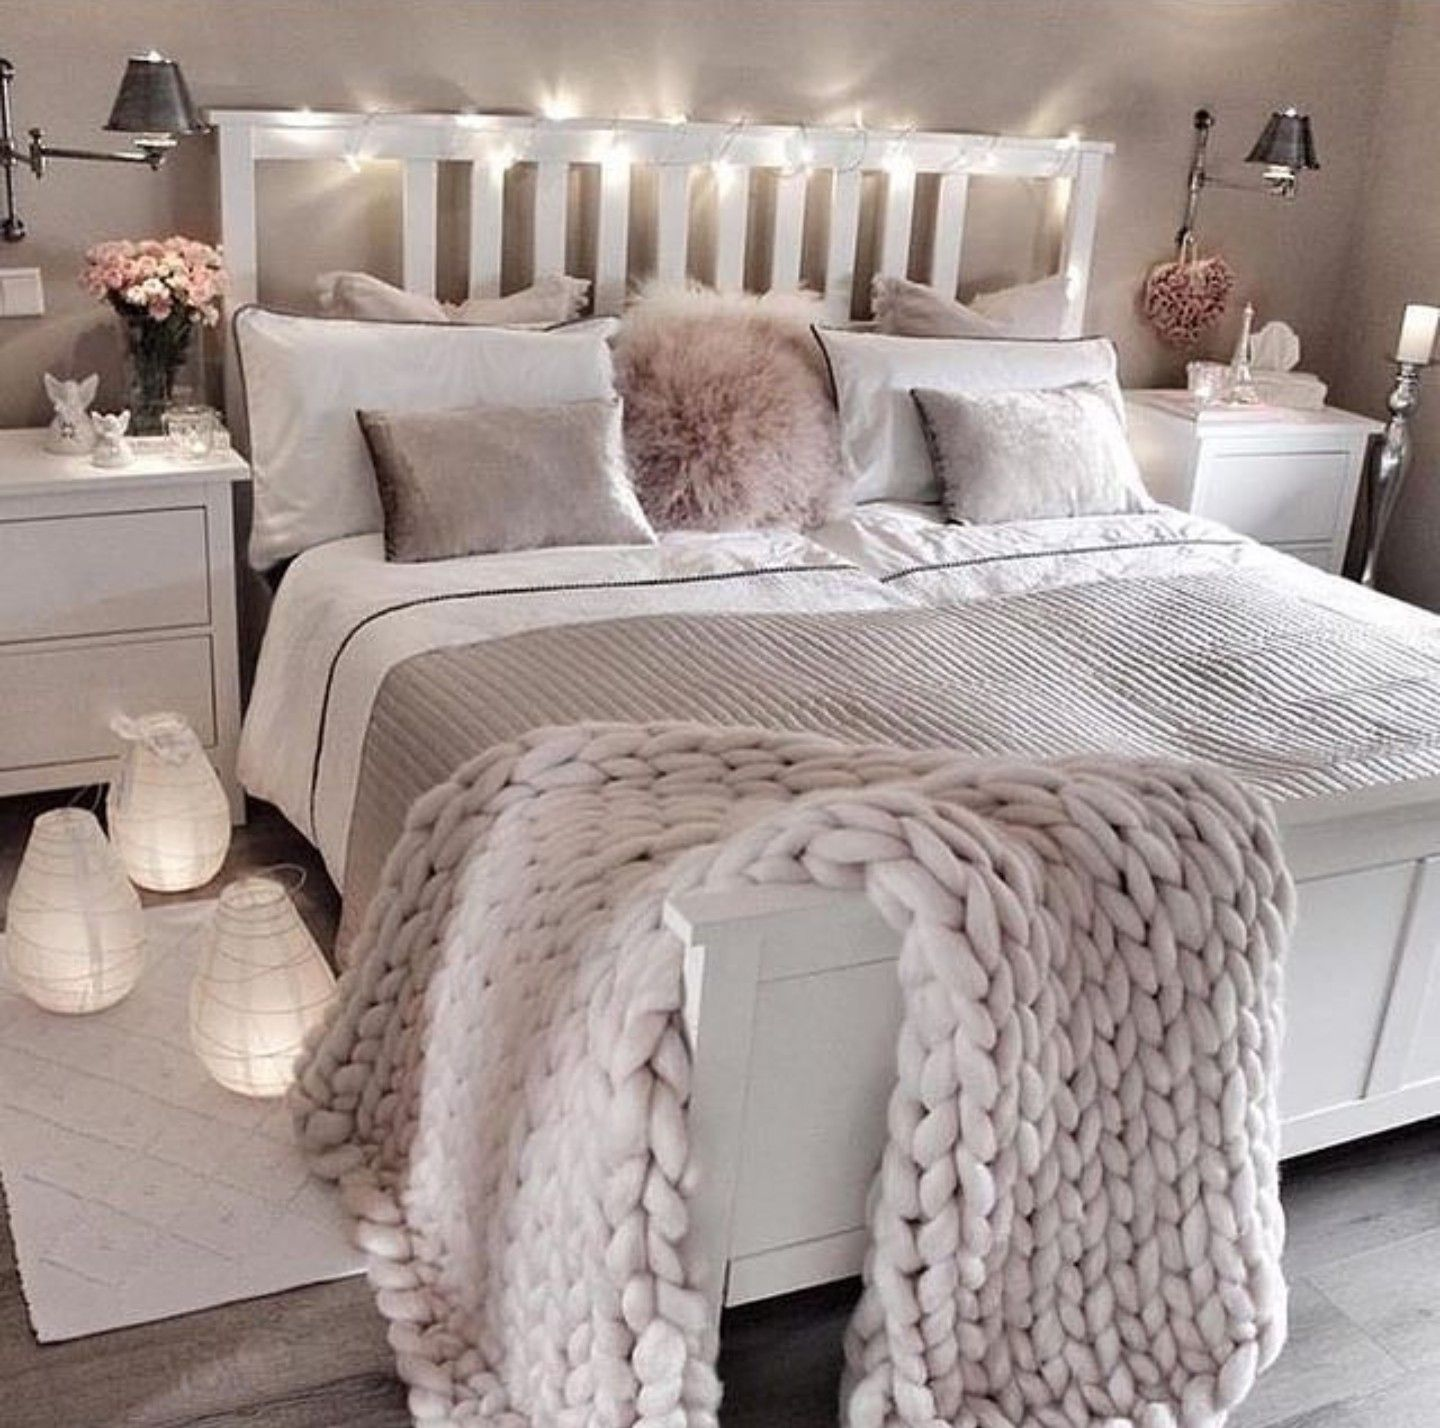 My bedroom goals  Bedroom makeover, Bedroom design, Bedroom decor